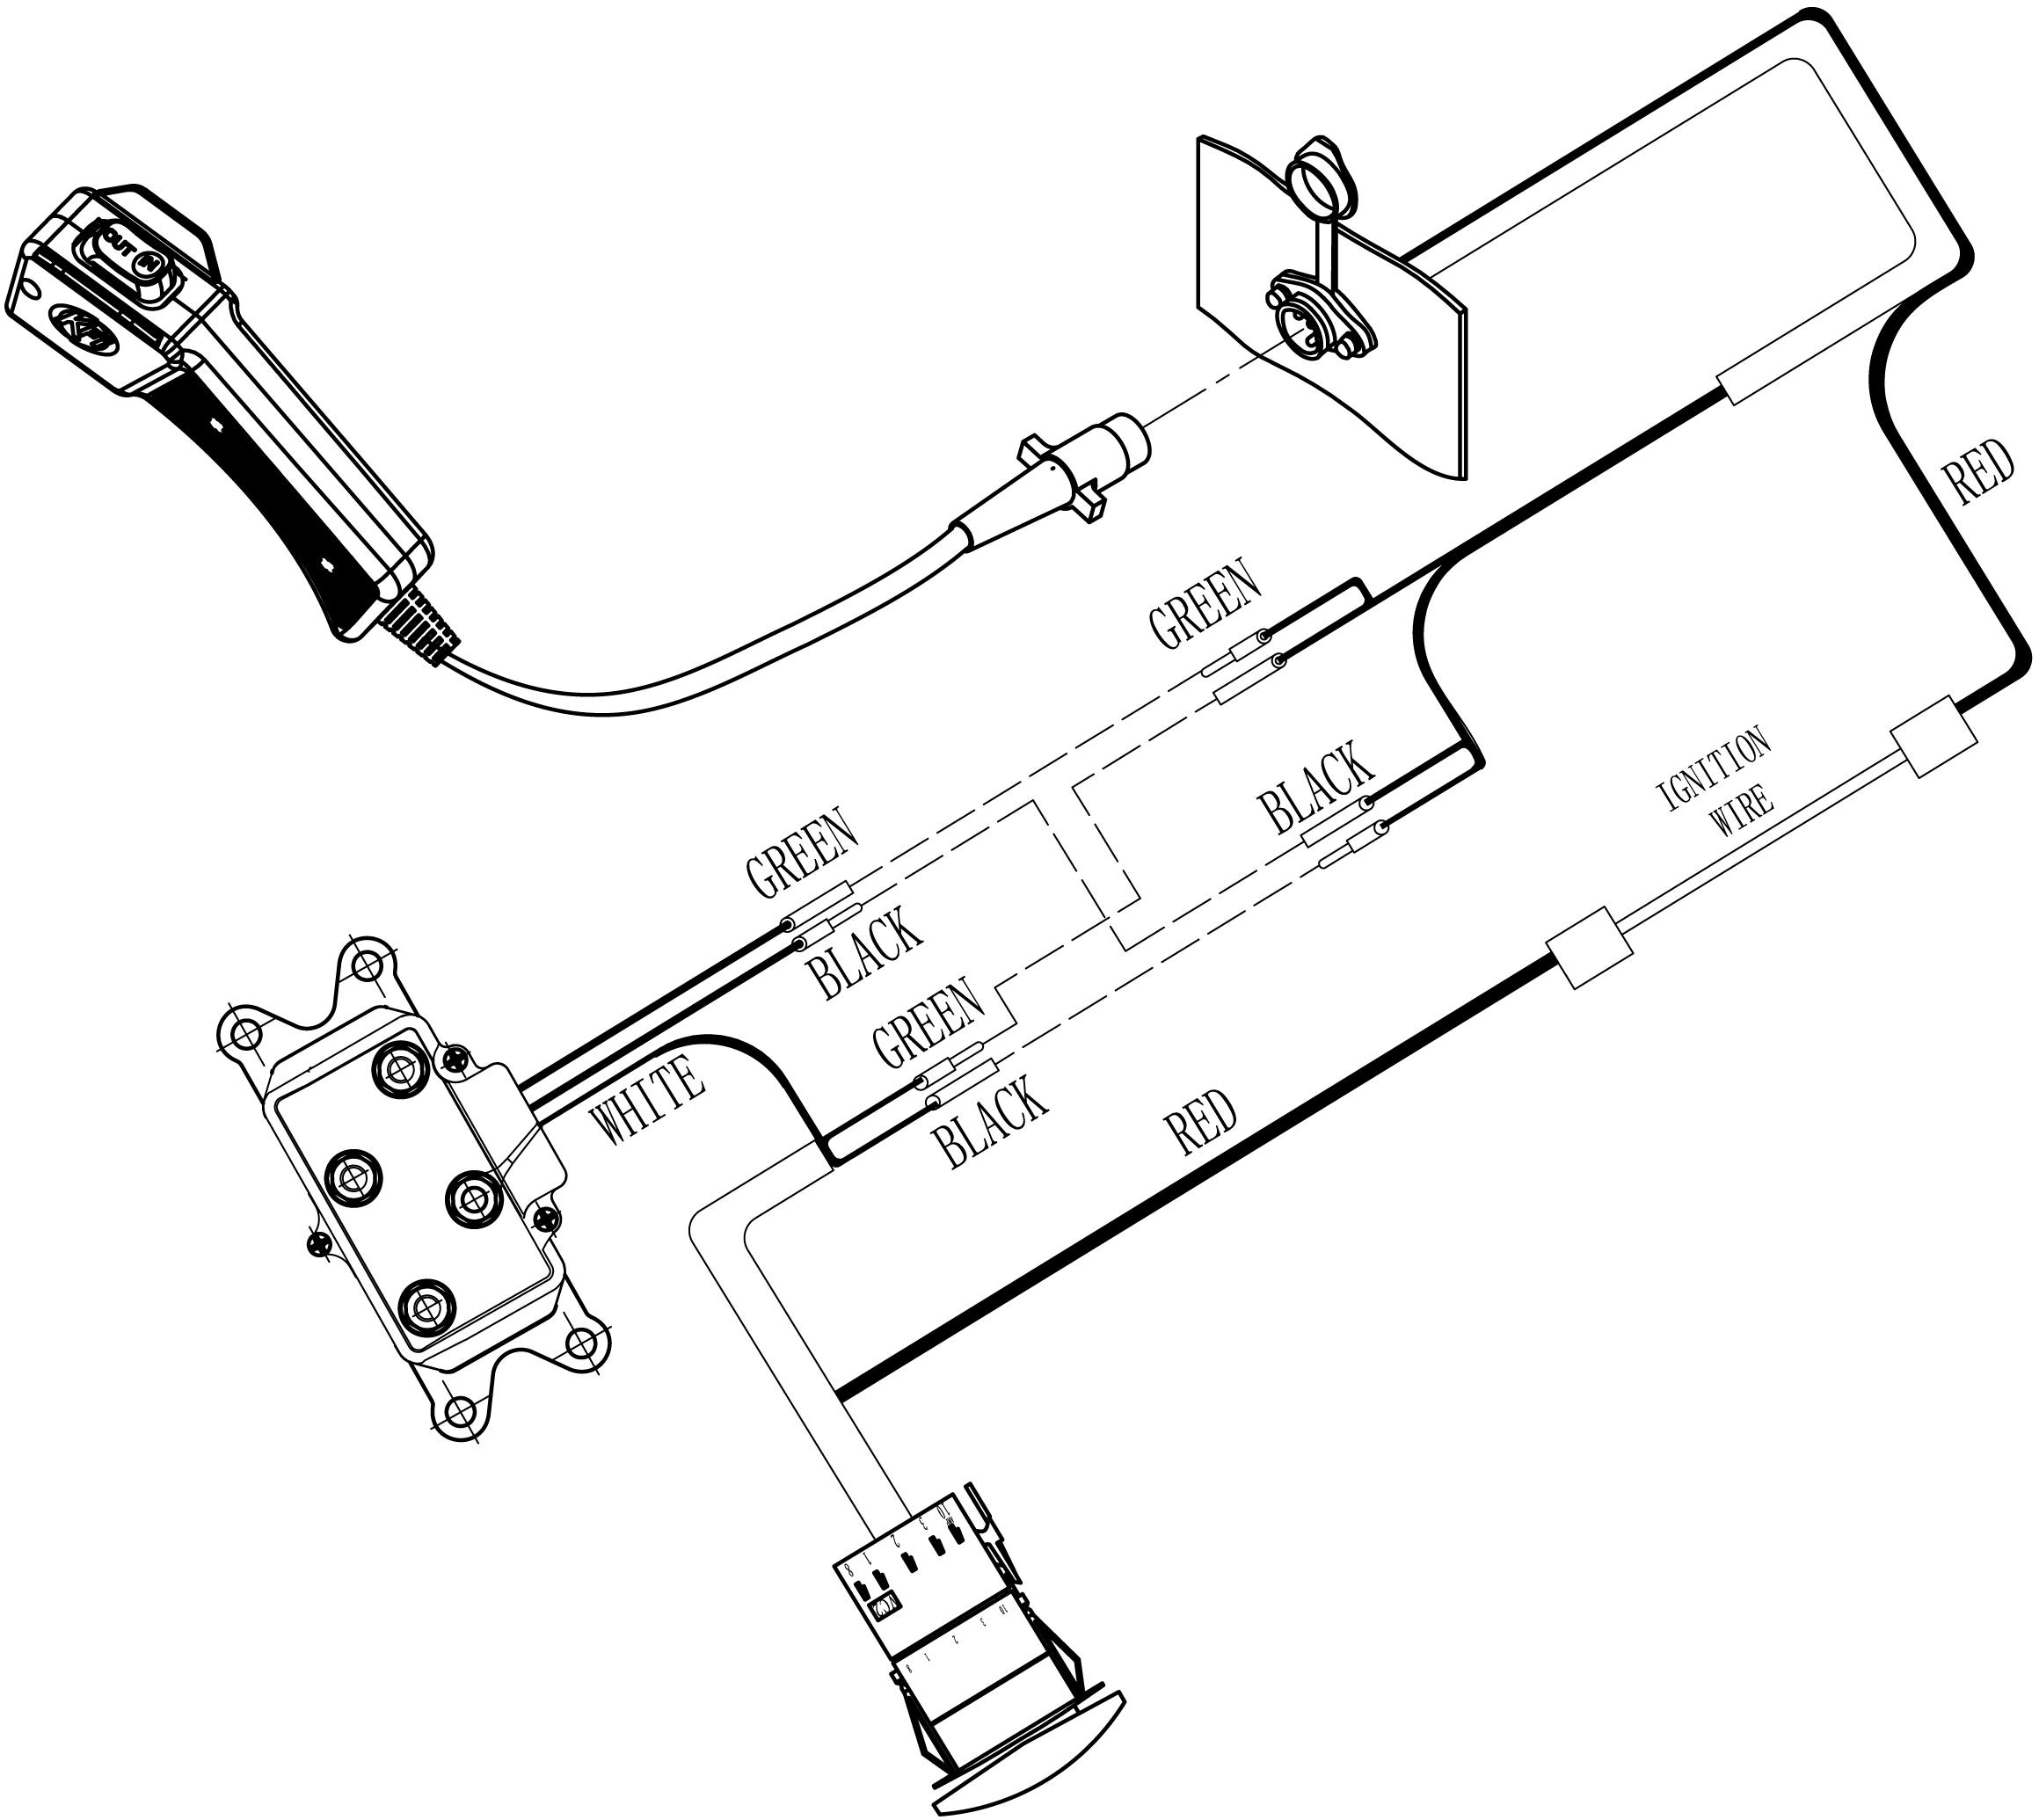 KFI_Carling_Switch_Wring_Diagram kfi winch wiring diagram atv winch solenoid wiring diagram wiring diagram for atv winch contactor at mifinder.co